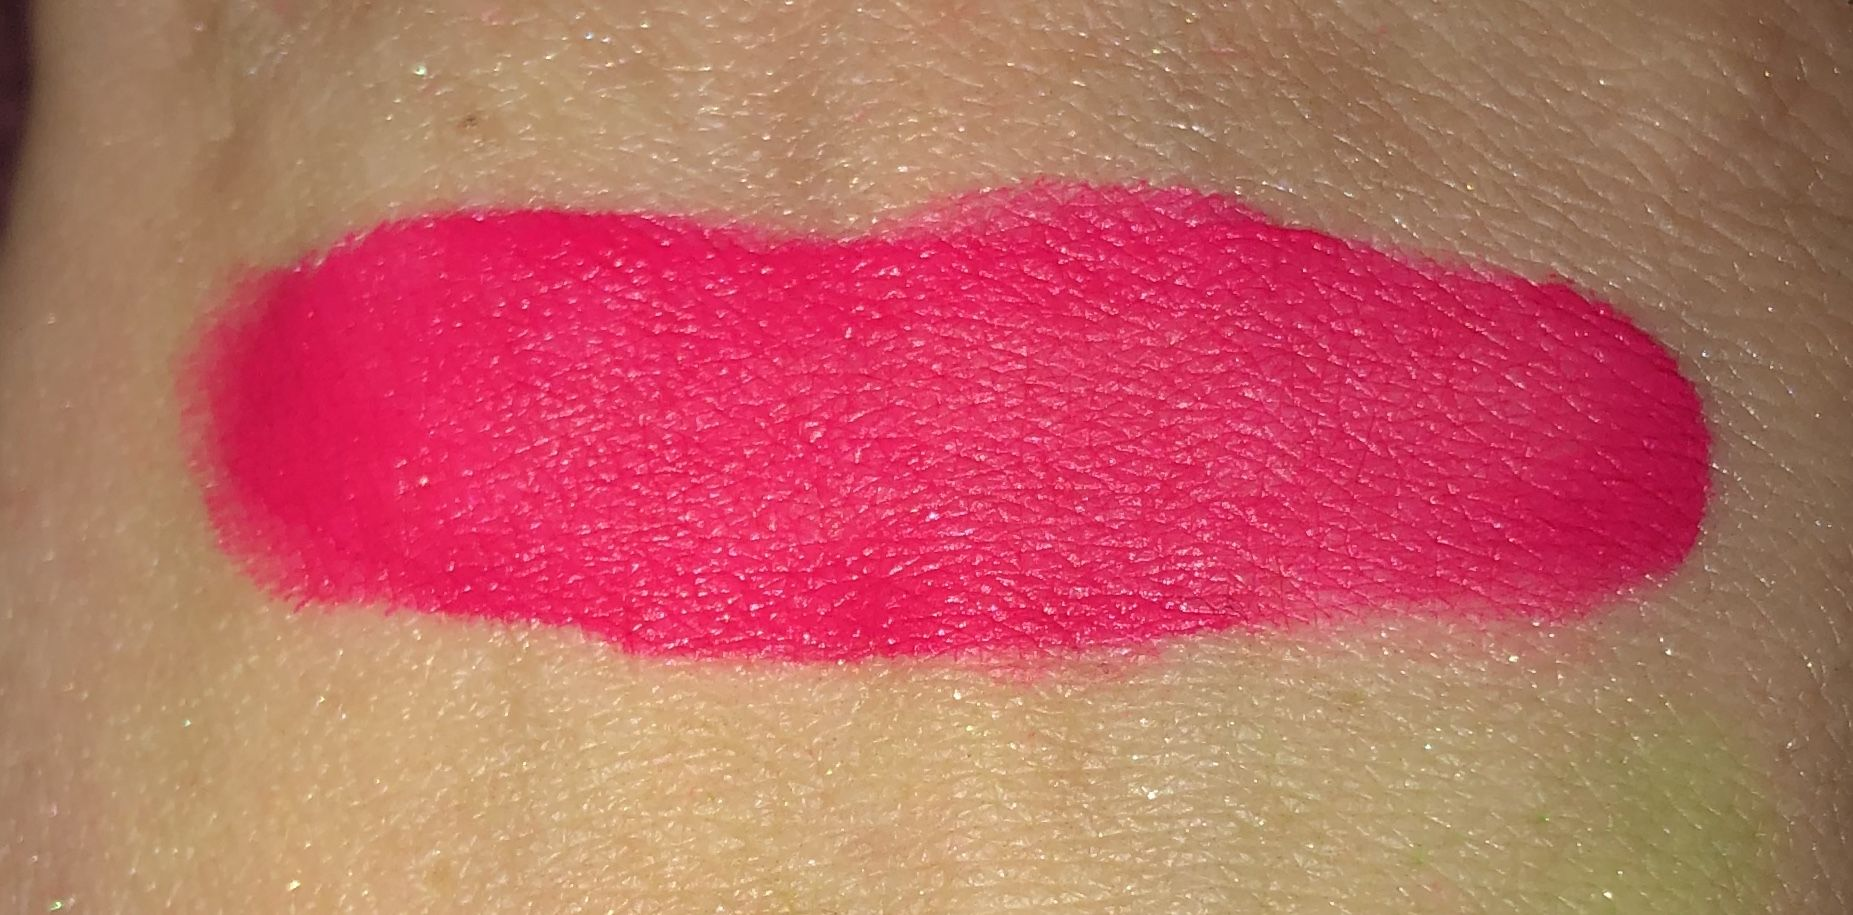 Neon Pink Gel Eyeliner from Dirtyy South Cosmetics #jojobaoil